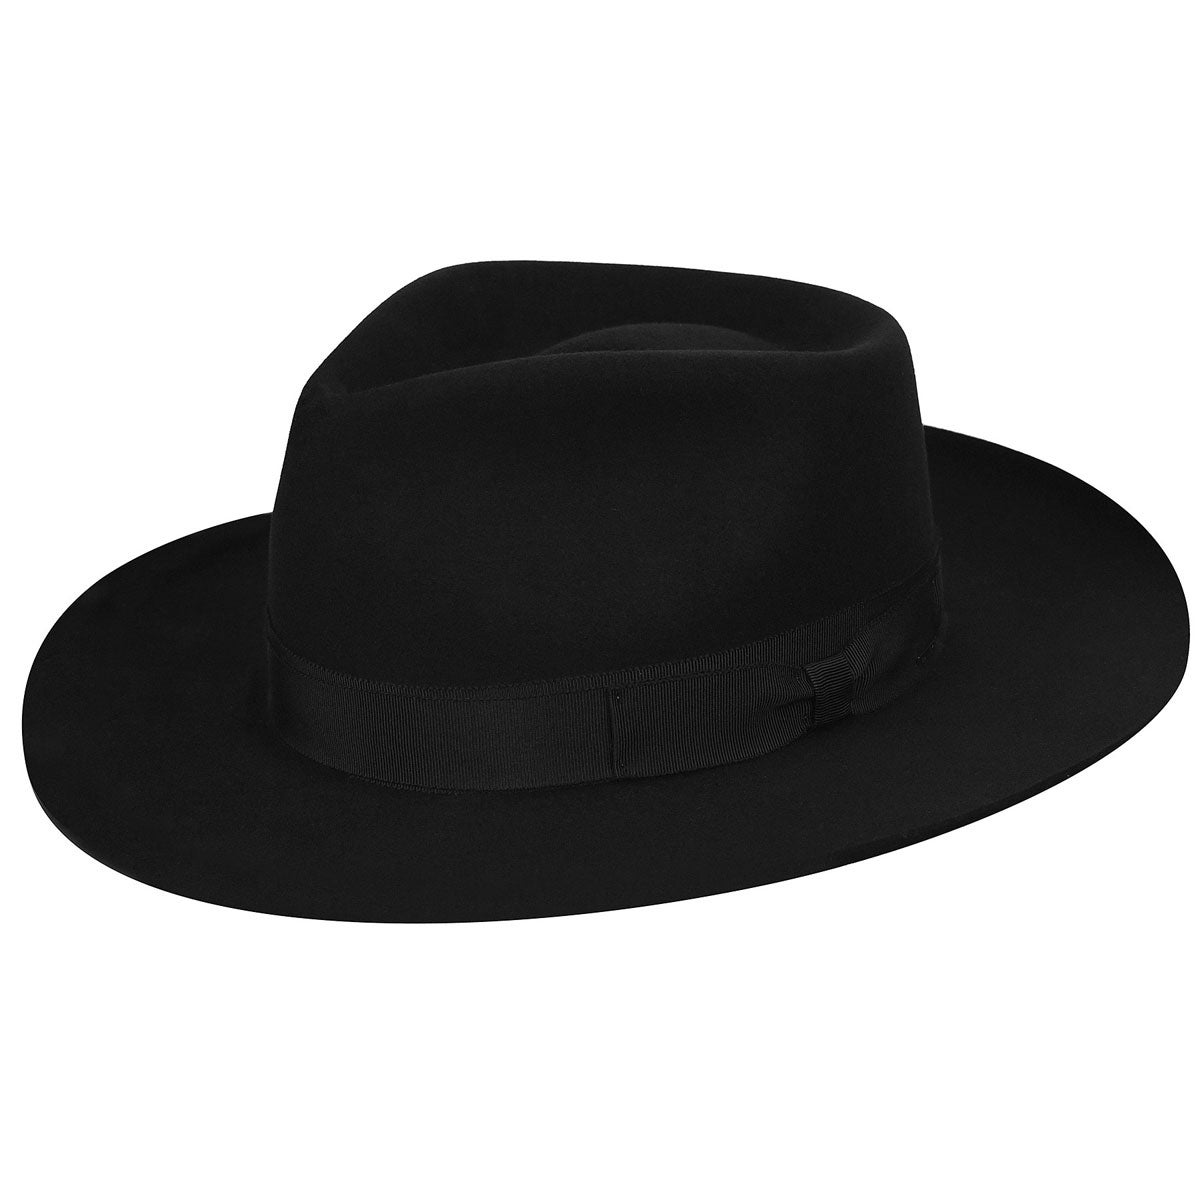 1940s Mens Hats | Fedora, Homburg, Pork Pie Hats Bankside Elite Fedora $160.00 AT vintagedancer.com